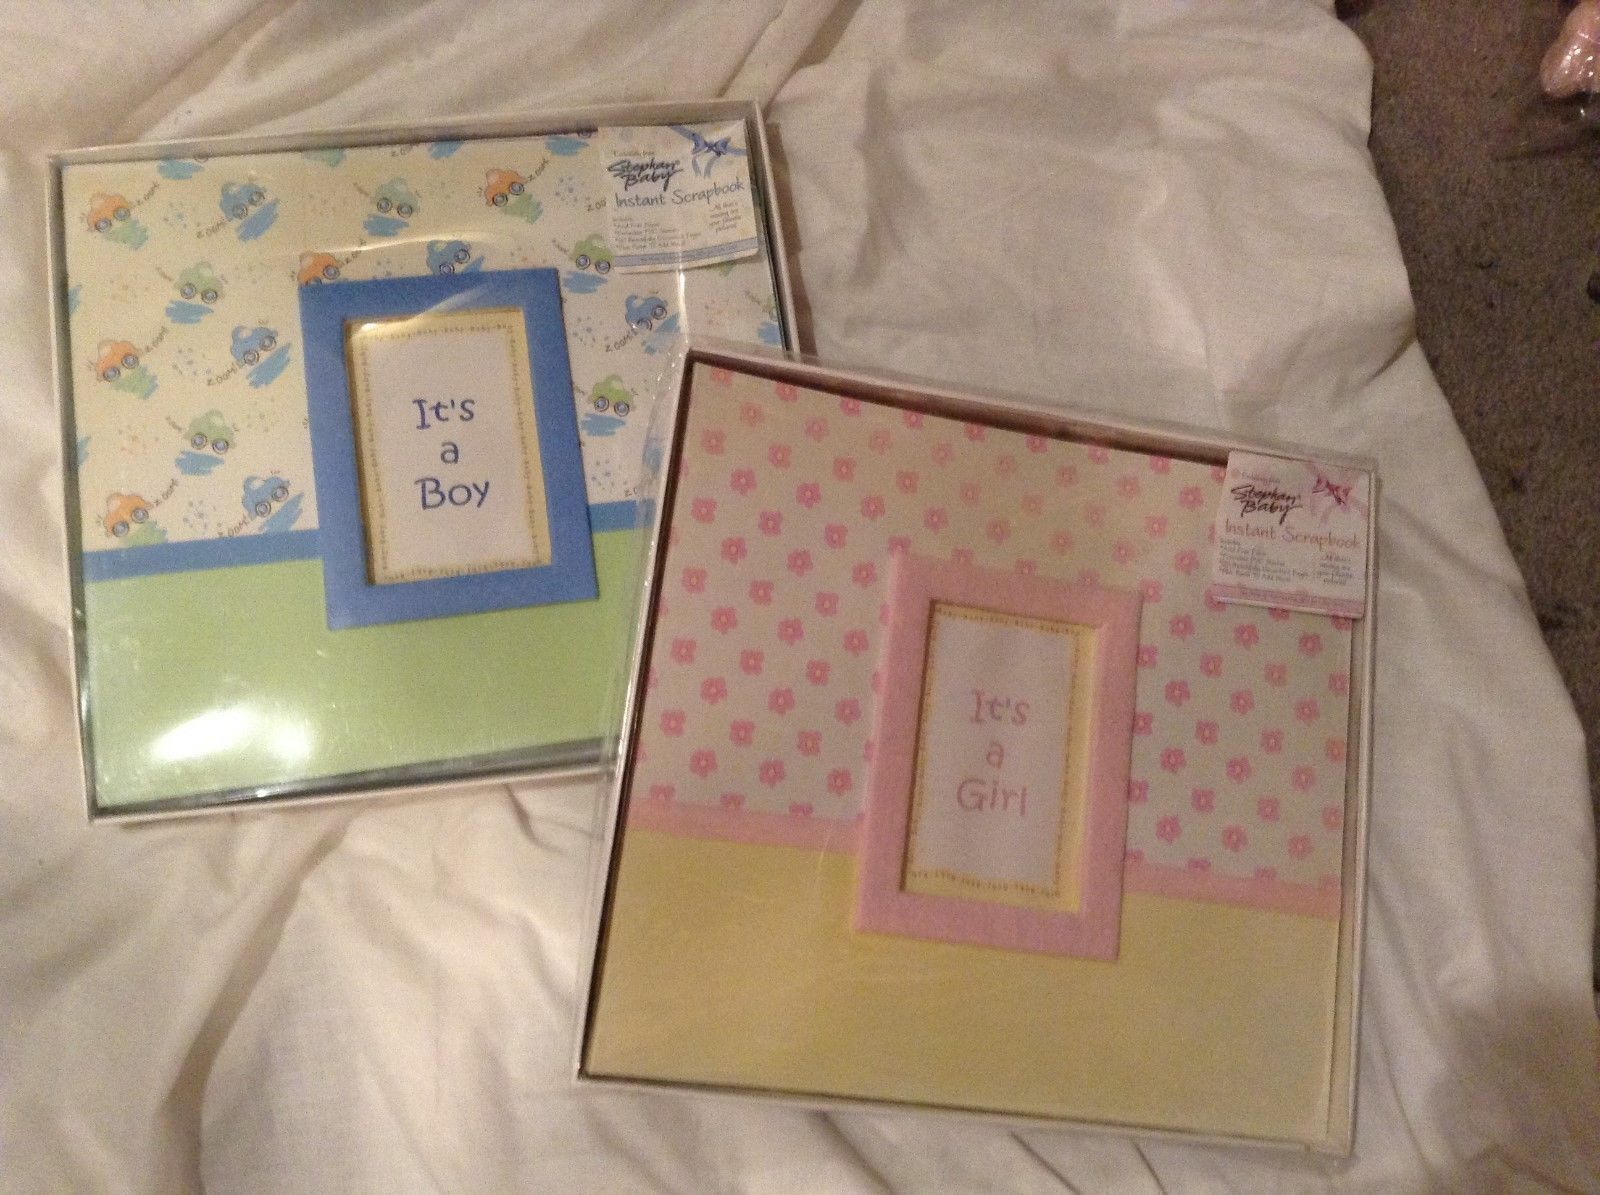 NEW Stephan Baby Instant Scrapbook  12 x 12